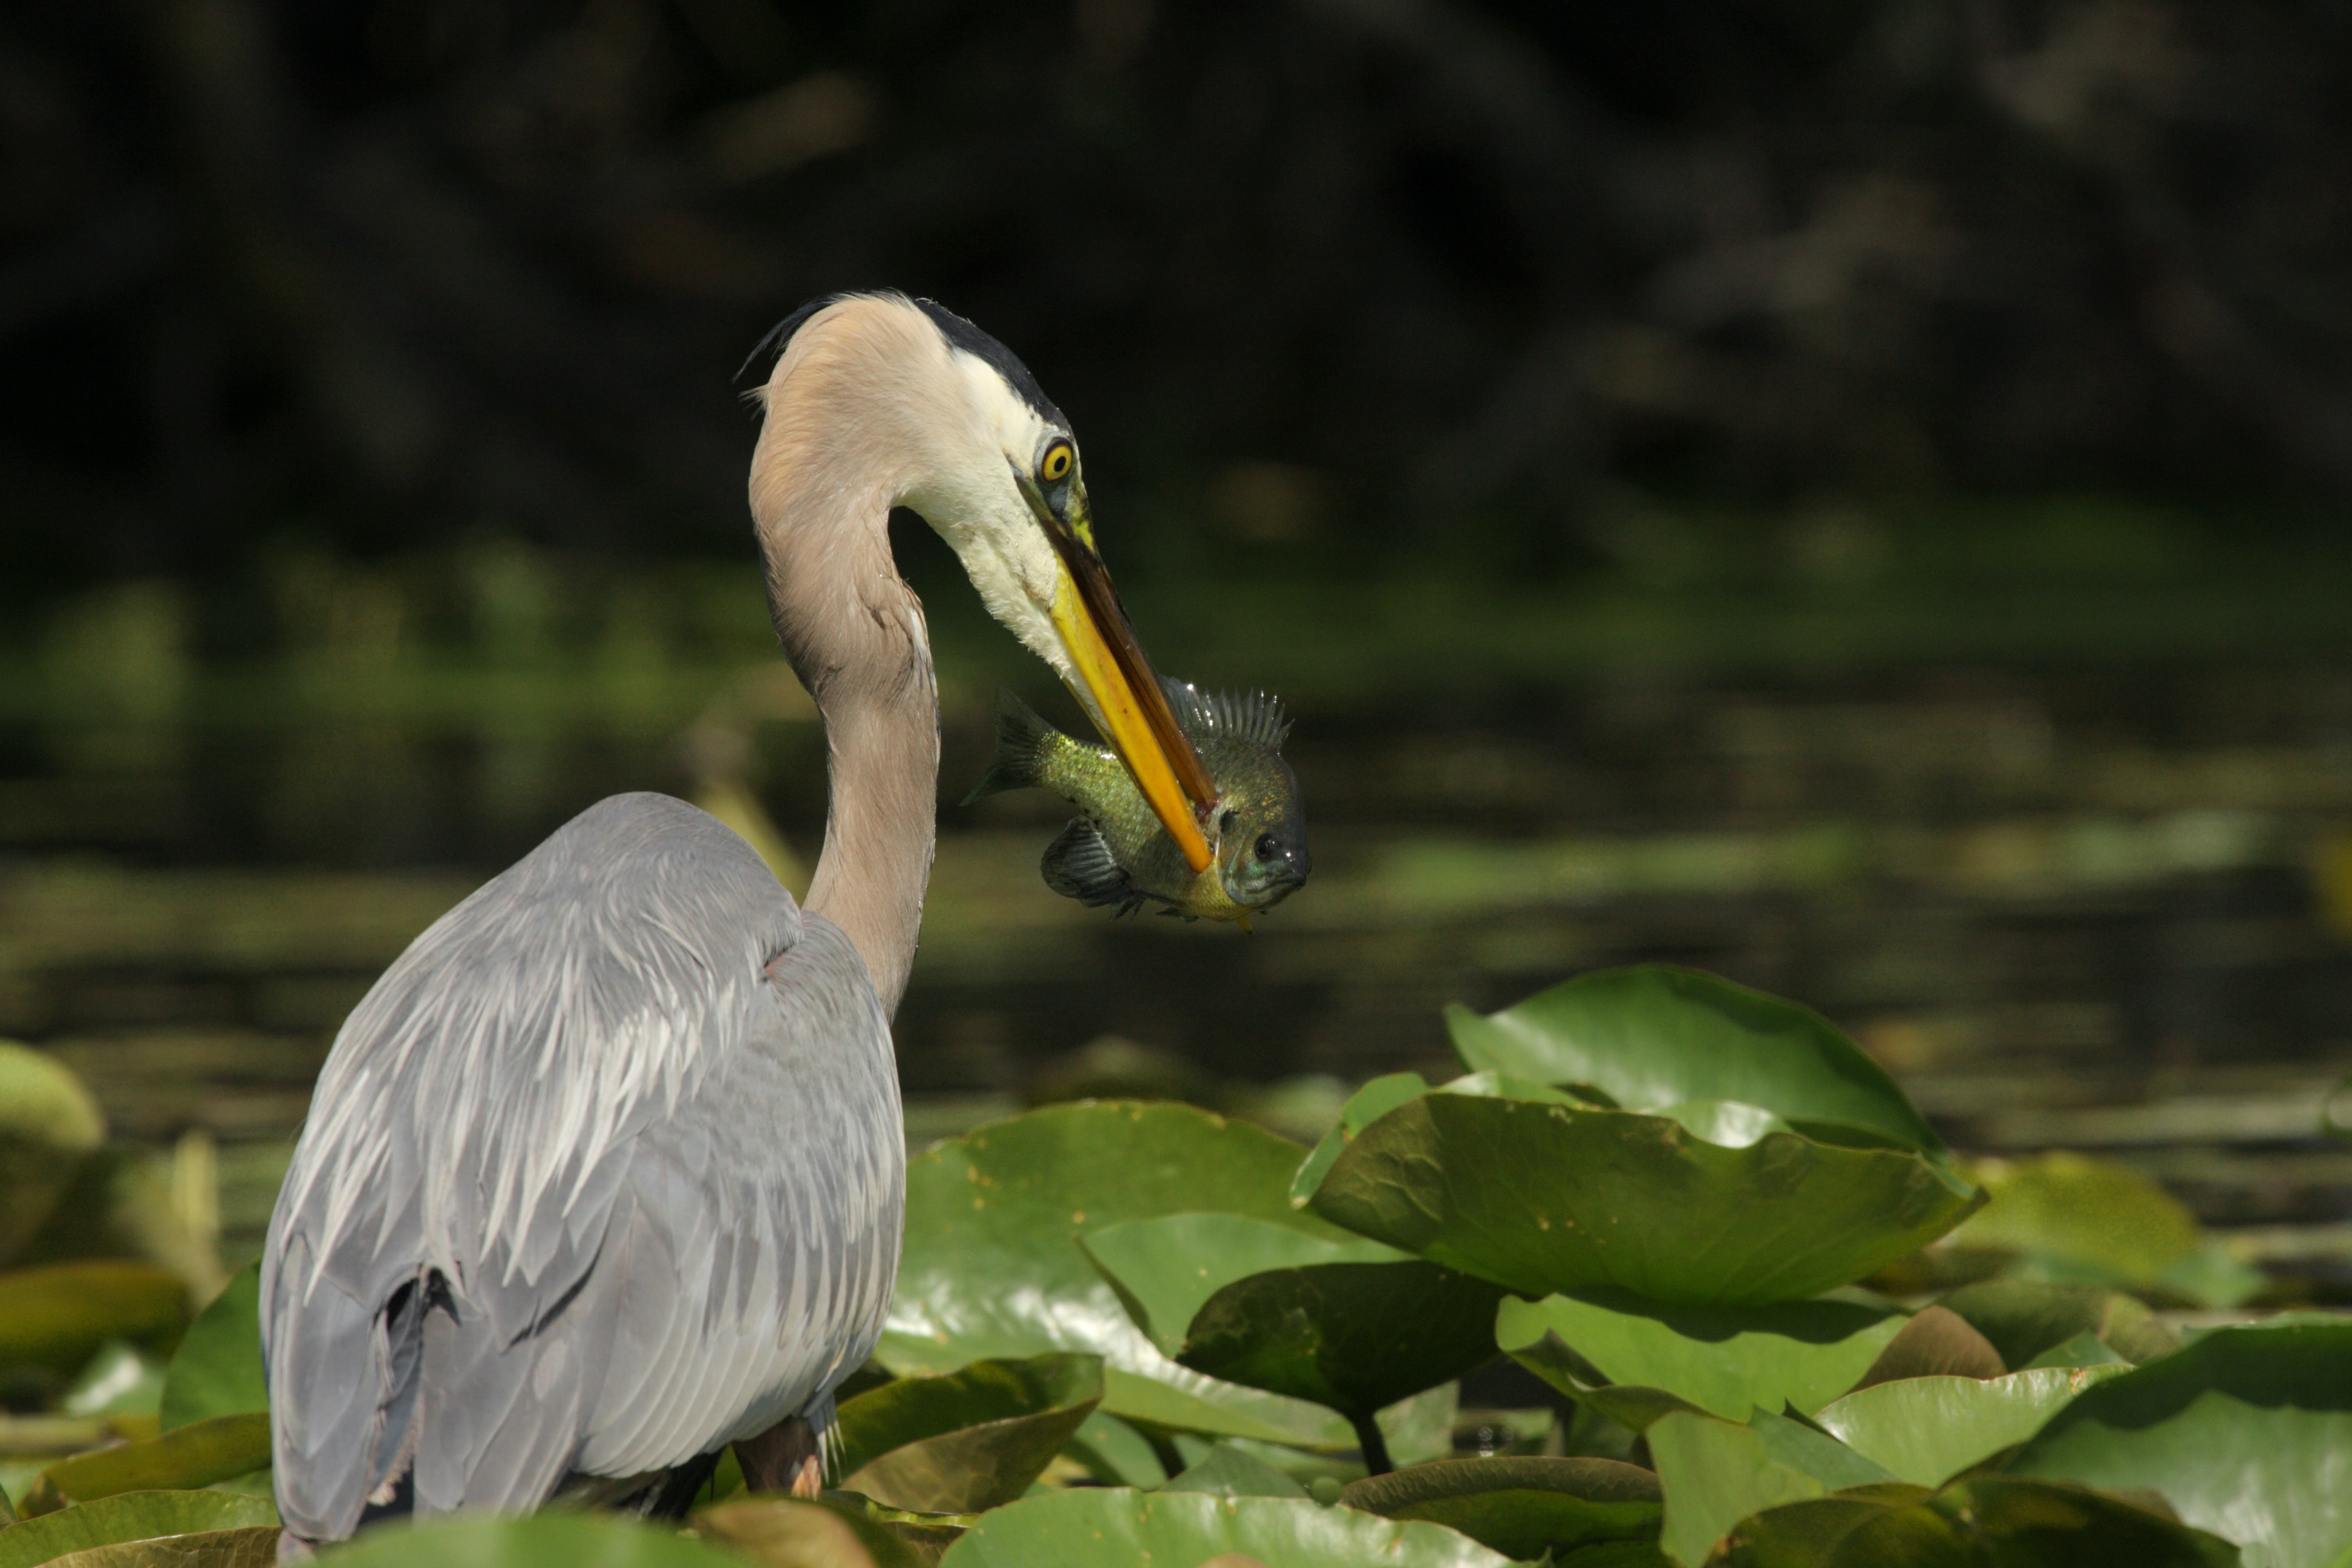 great blue heron catching fish during daytime